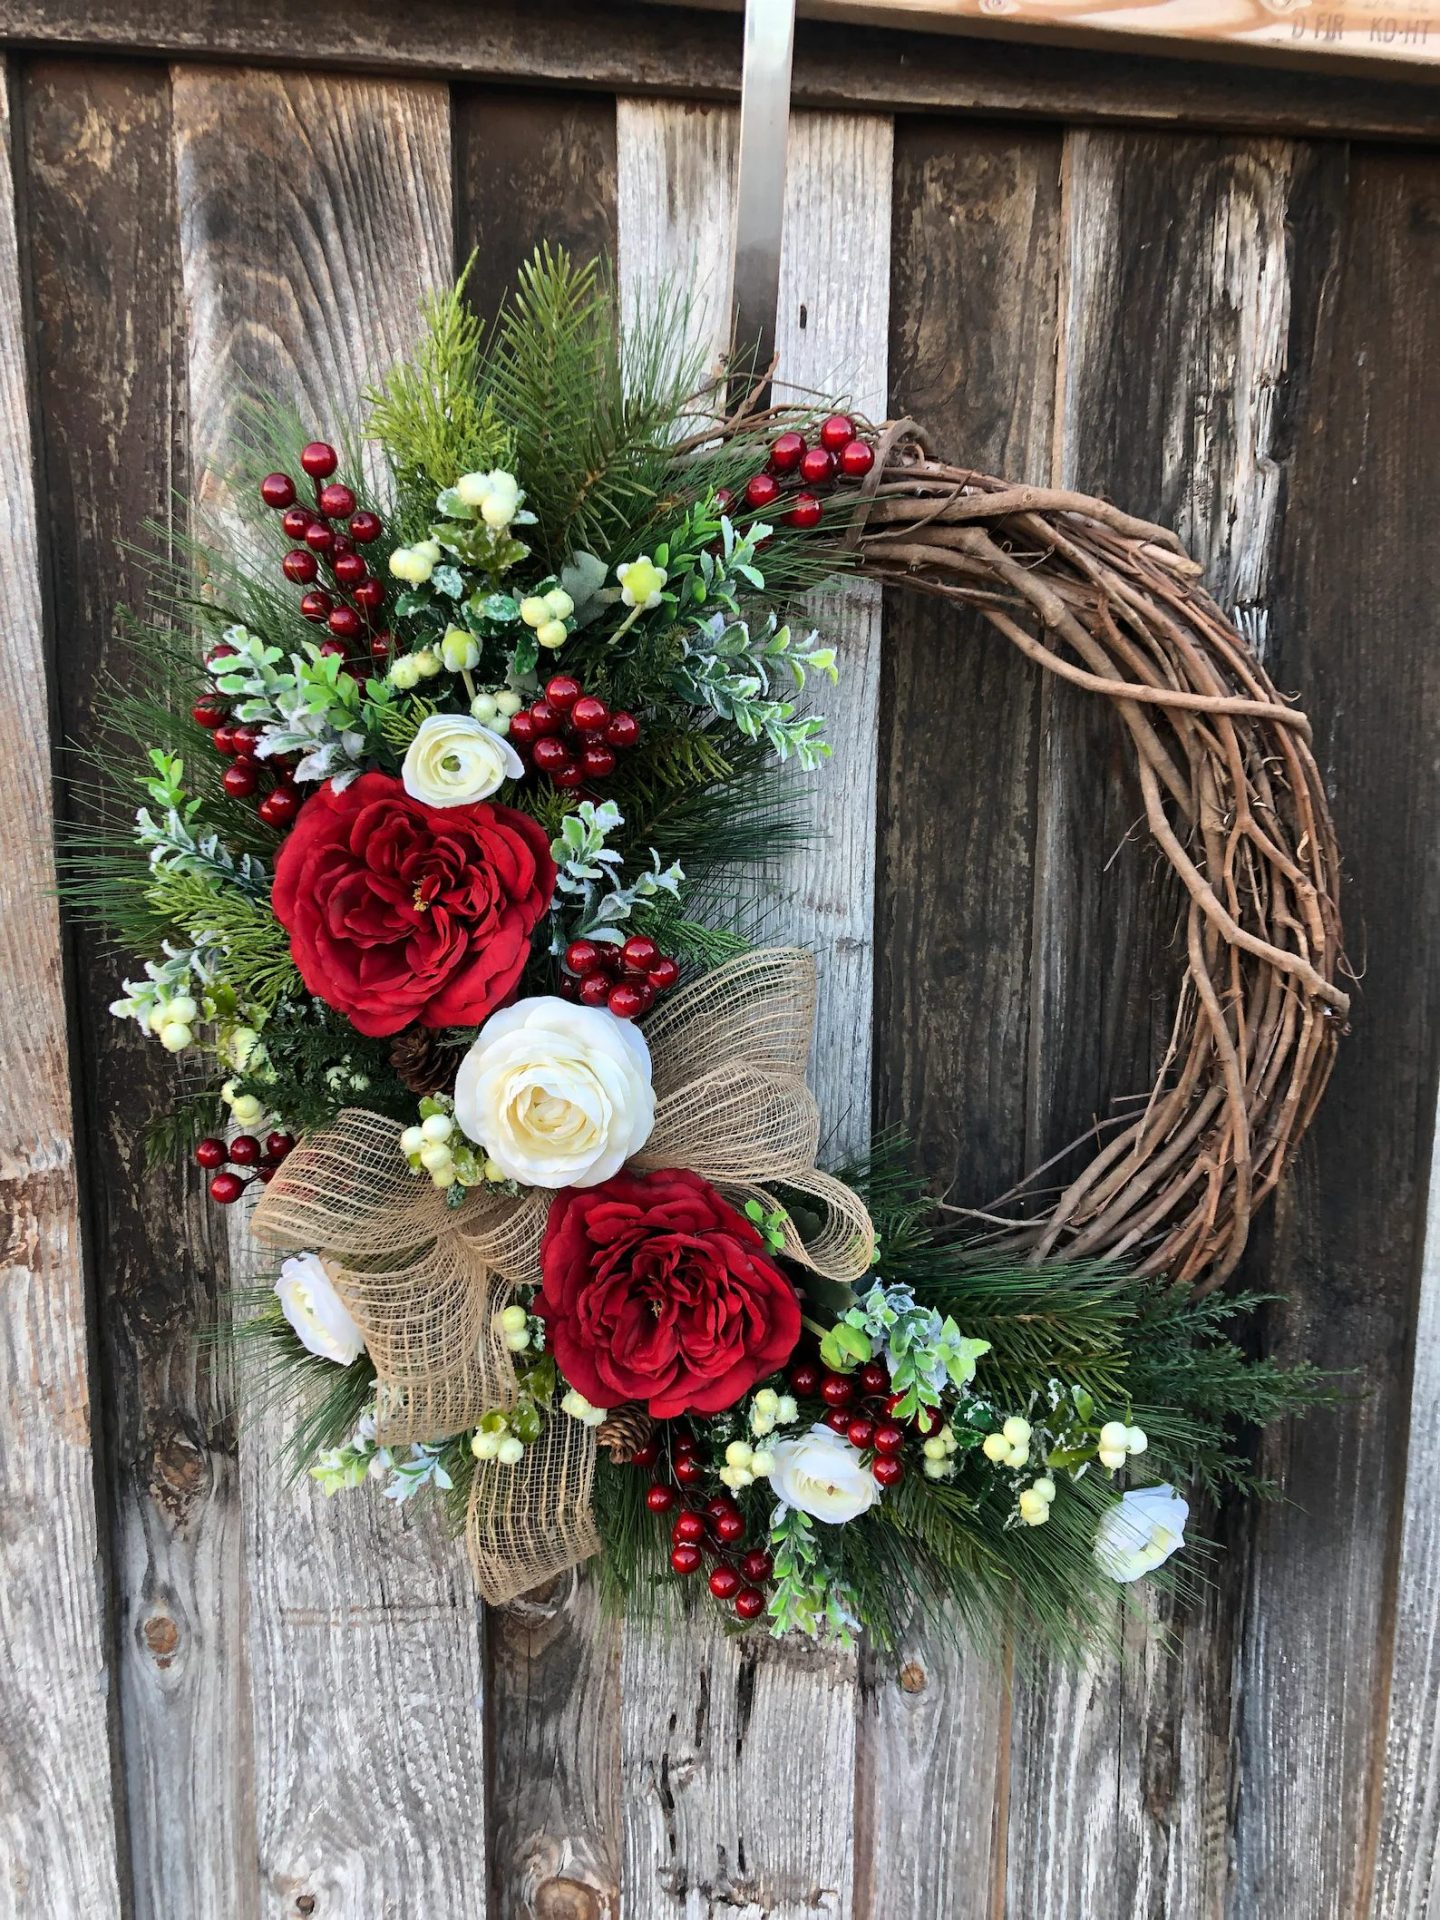 Grapevine Wreath With White And Red Flowers